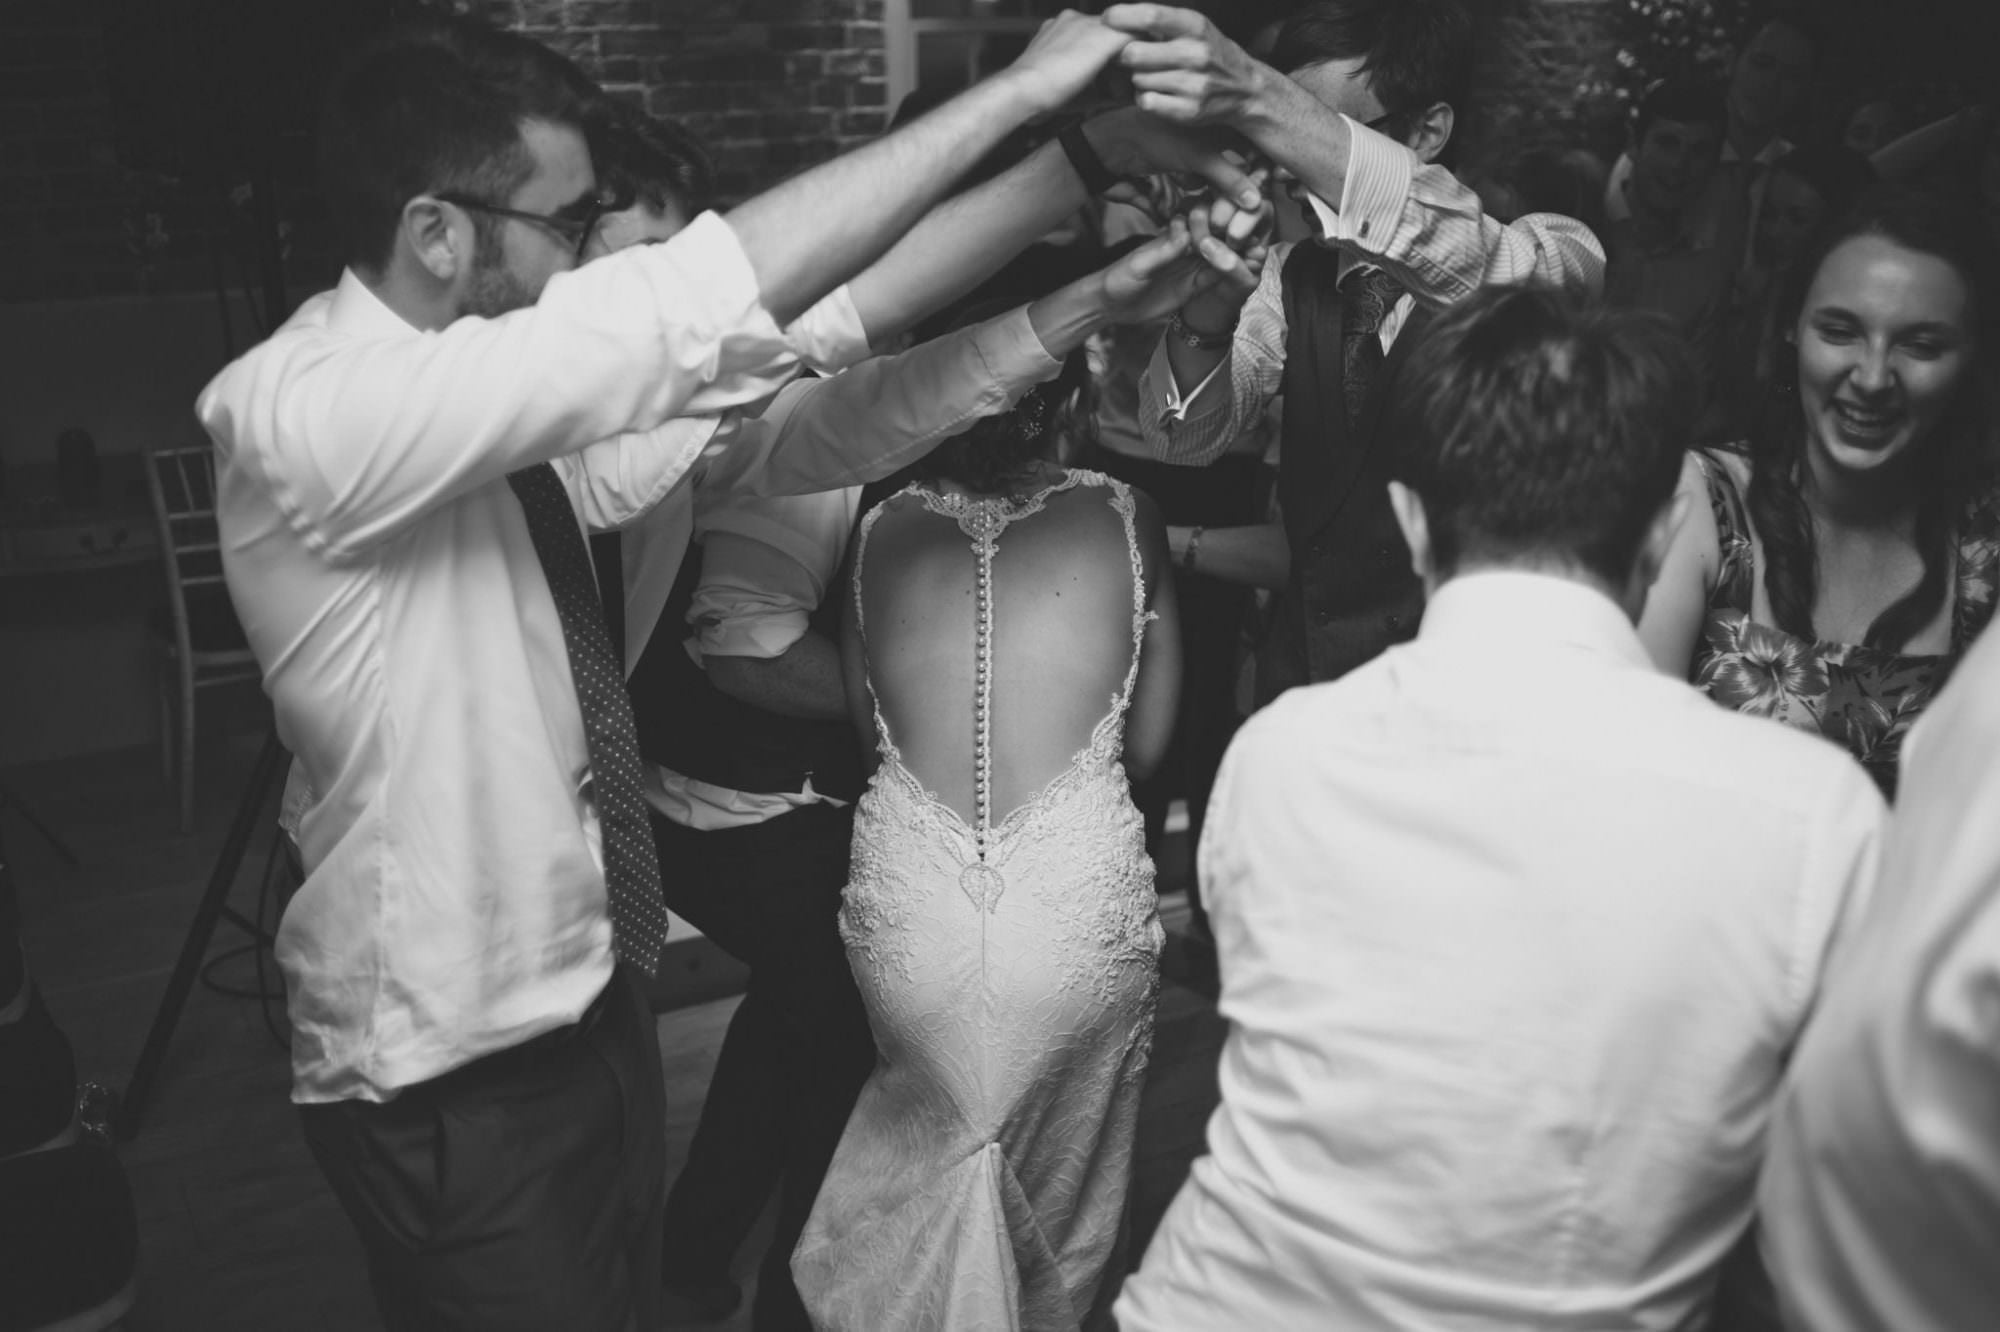 Dorset wedding dancing from Canford Magna Church wedding